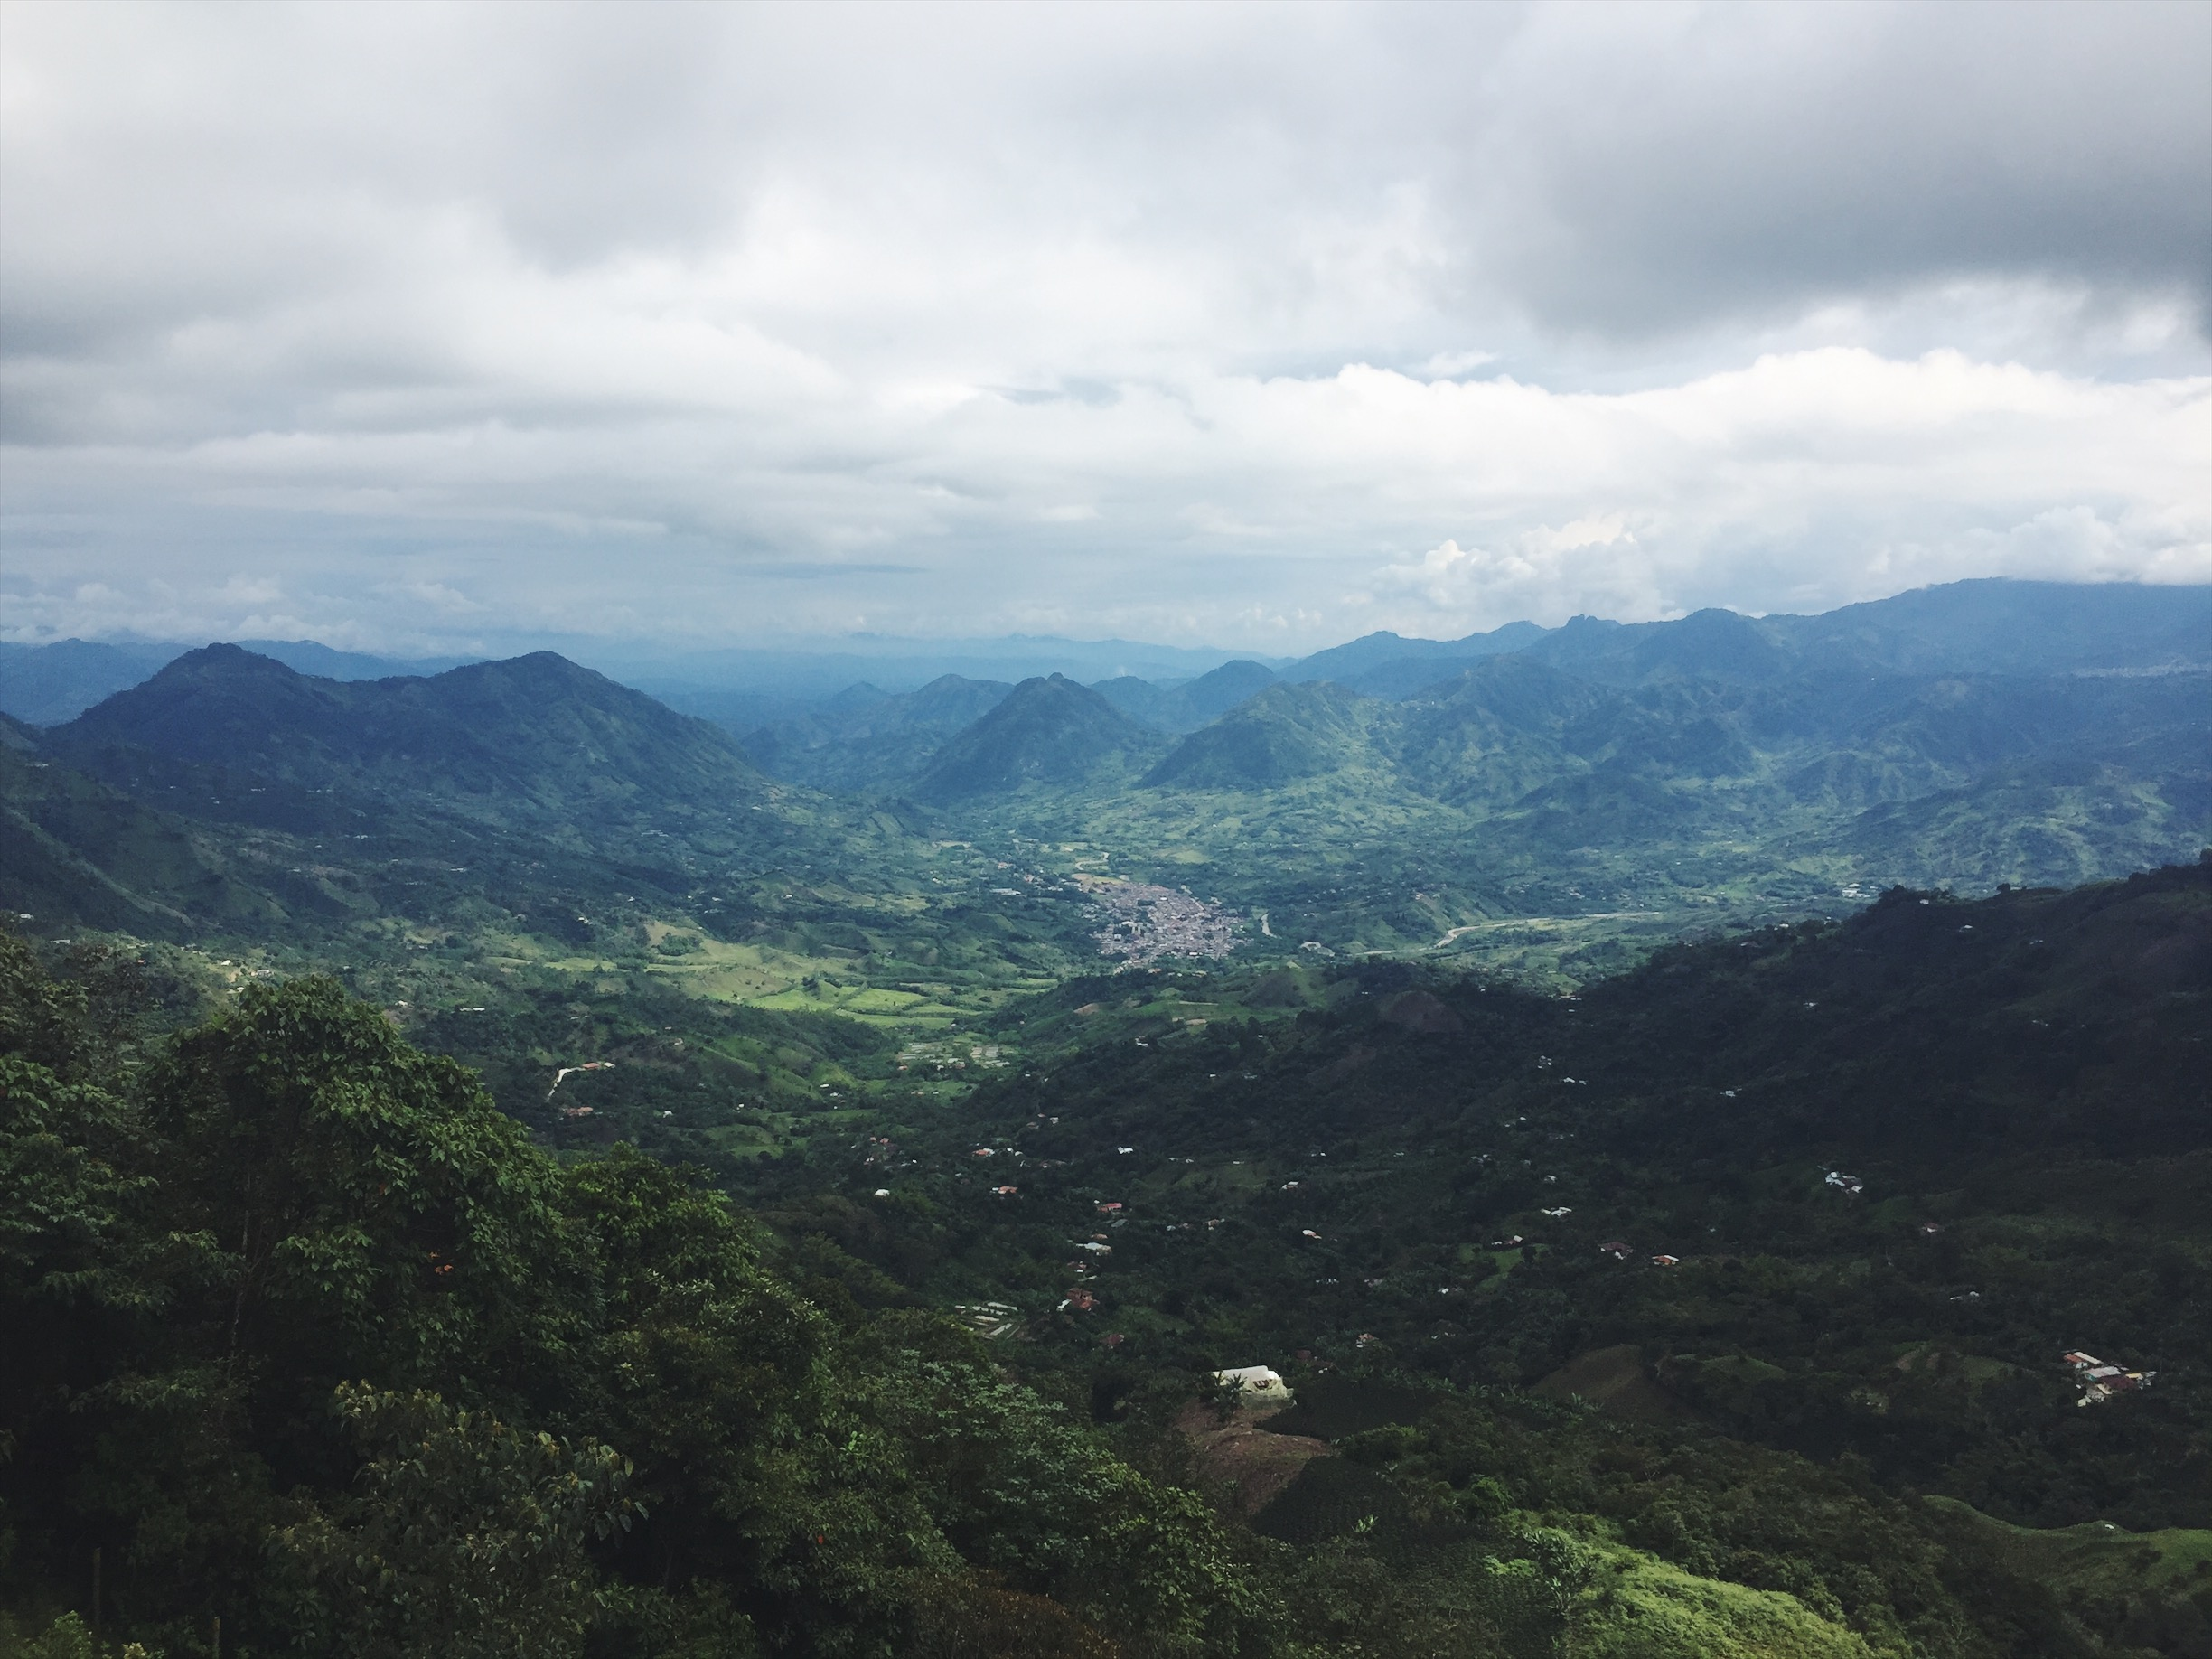 Colombia's coffee triangle, the Eje Cafetero, is a stunning configuration of breathtaking topography, agricultural abundance and the impossibly charming colonial pueblos that always seem to be located at either the veryyyyy top or veryyyyy bottom of any given valley.